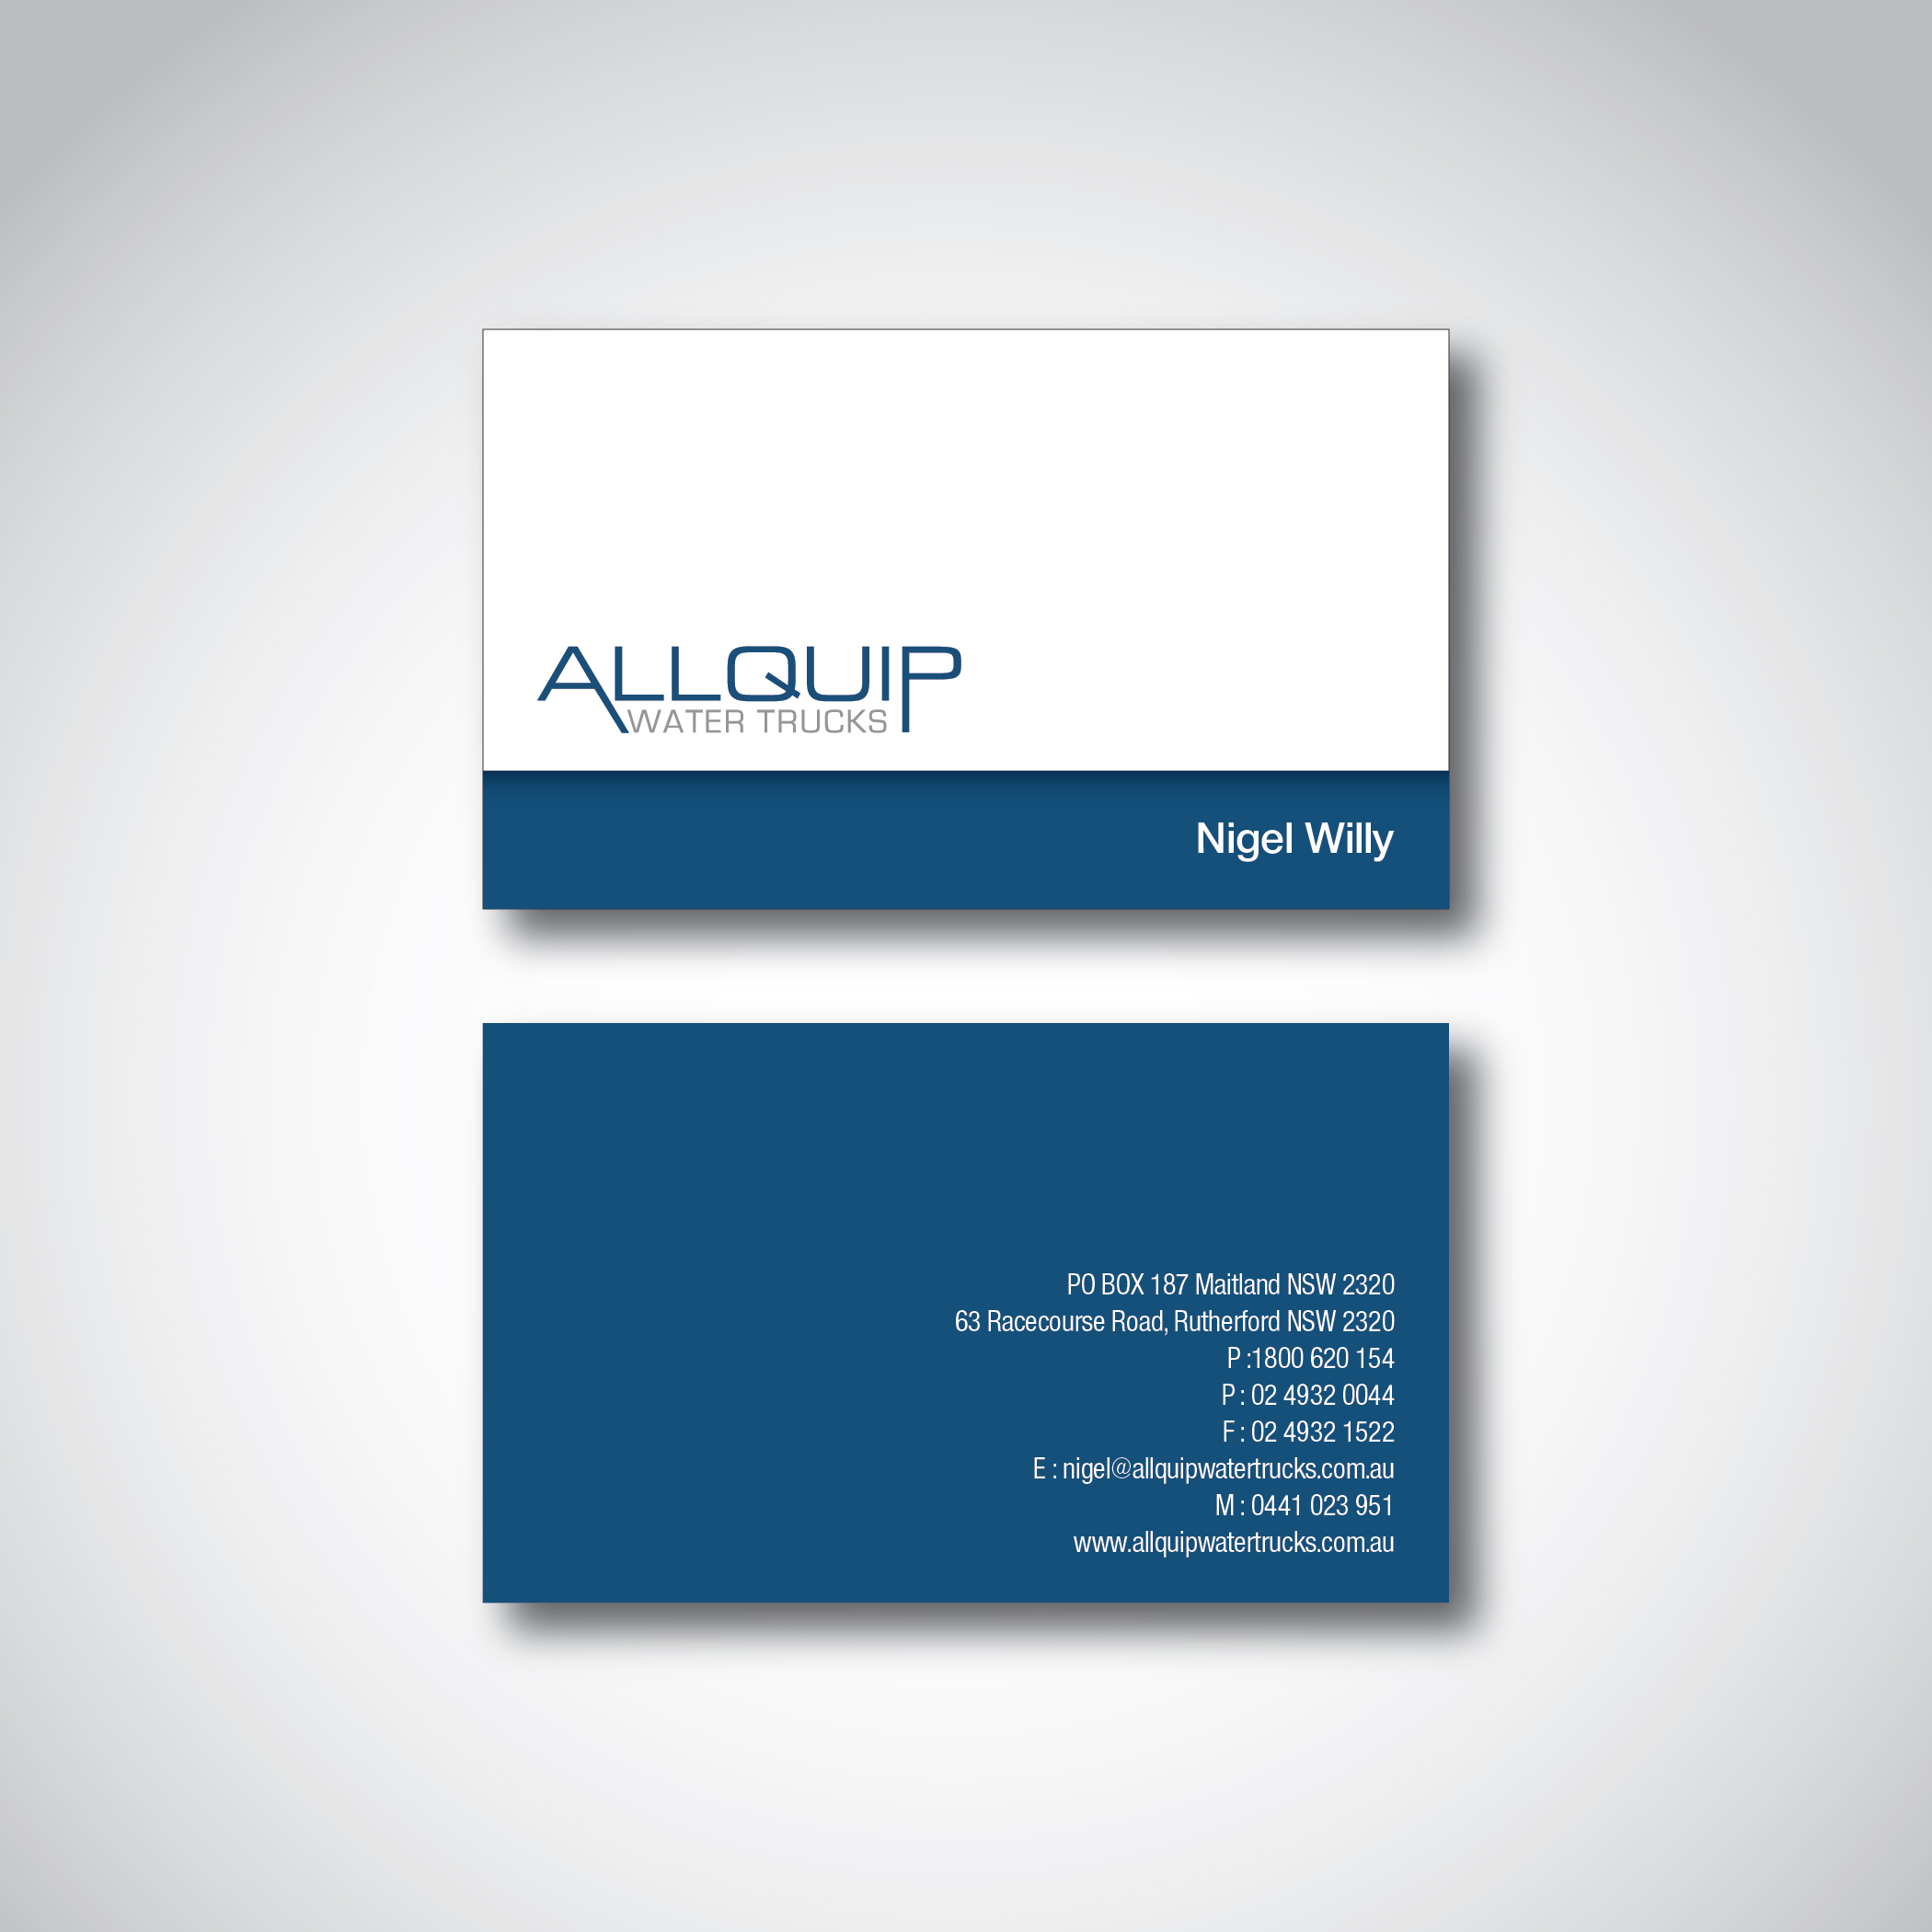 Business Card Design Contests New Business Card Design For Allquip